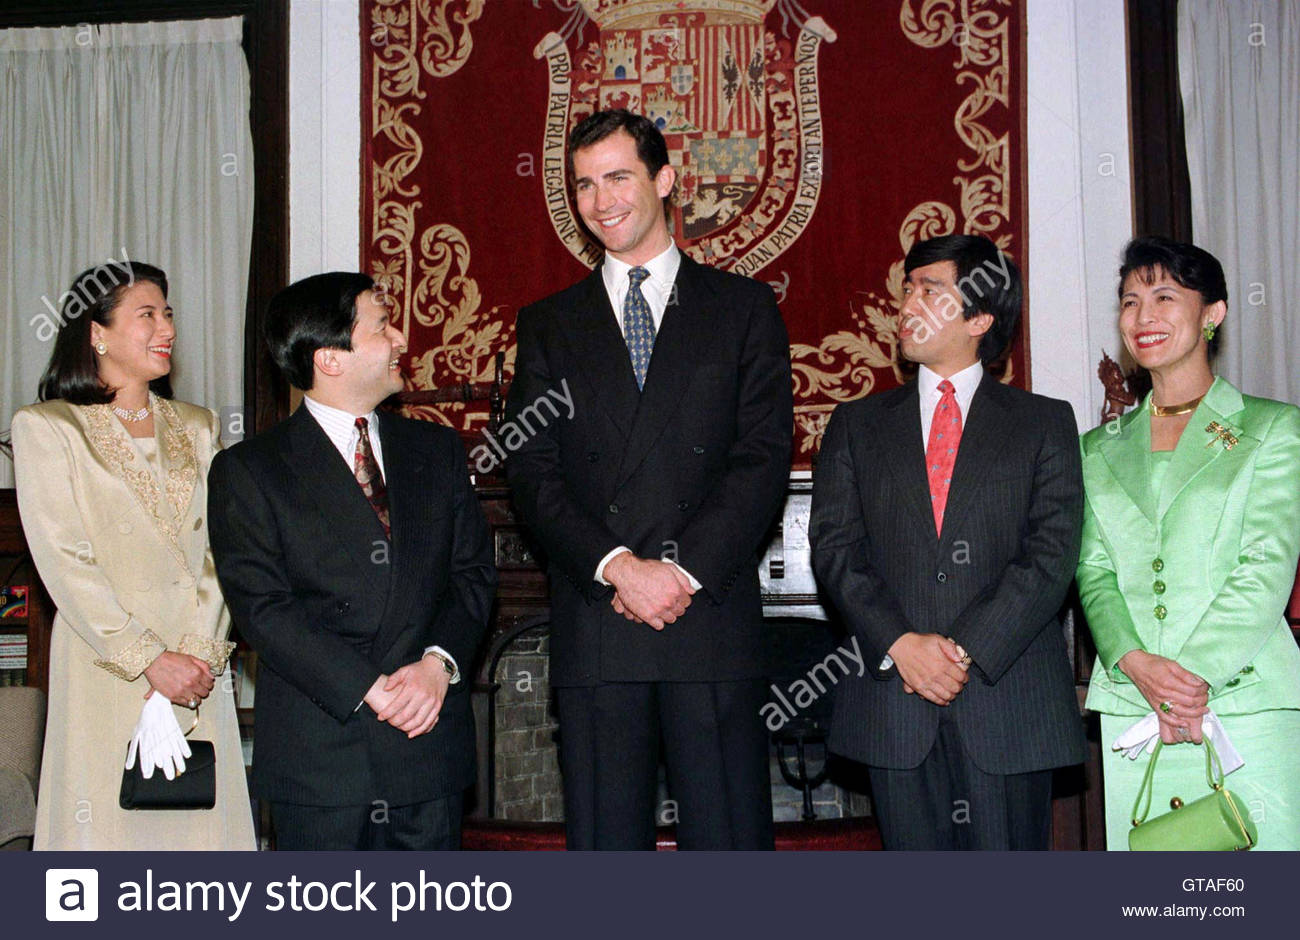 spains-crown-prince-felipe-c-chats-with-japanese-crown-prince-naruhito-GTAF60.jpg